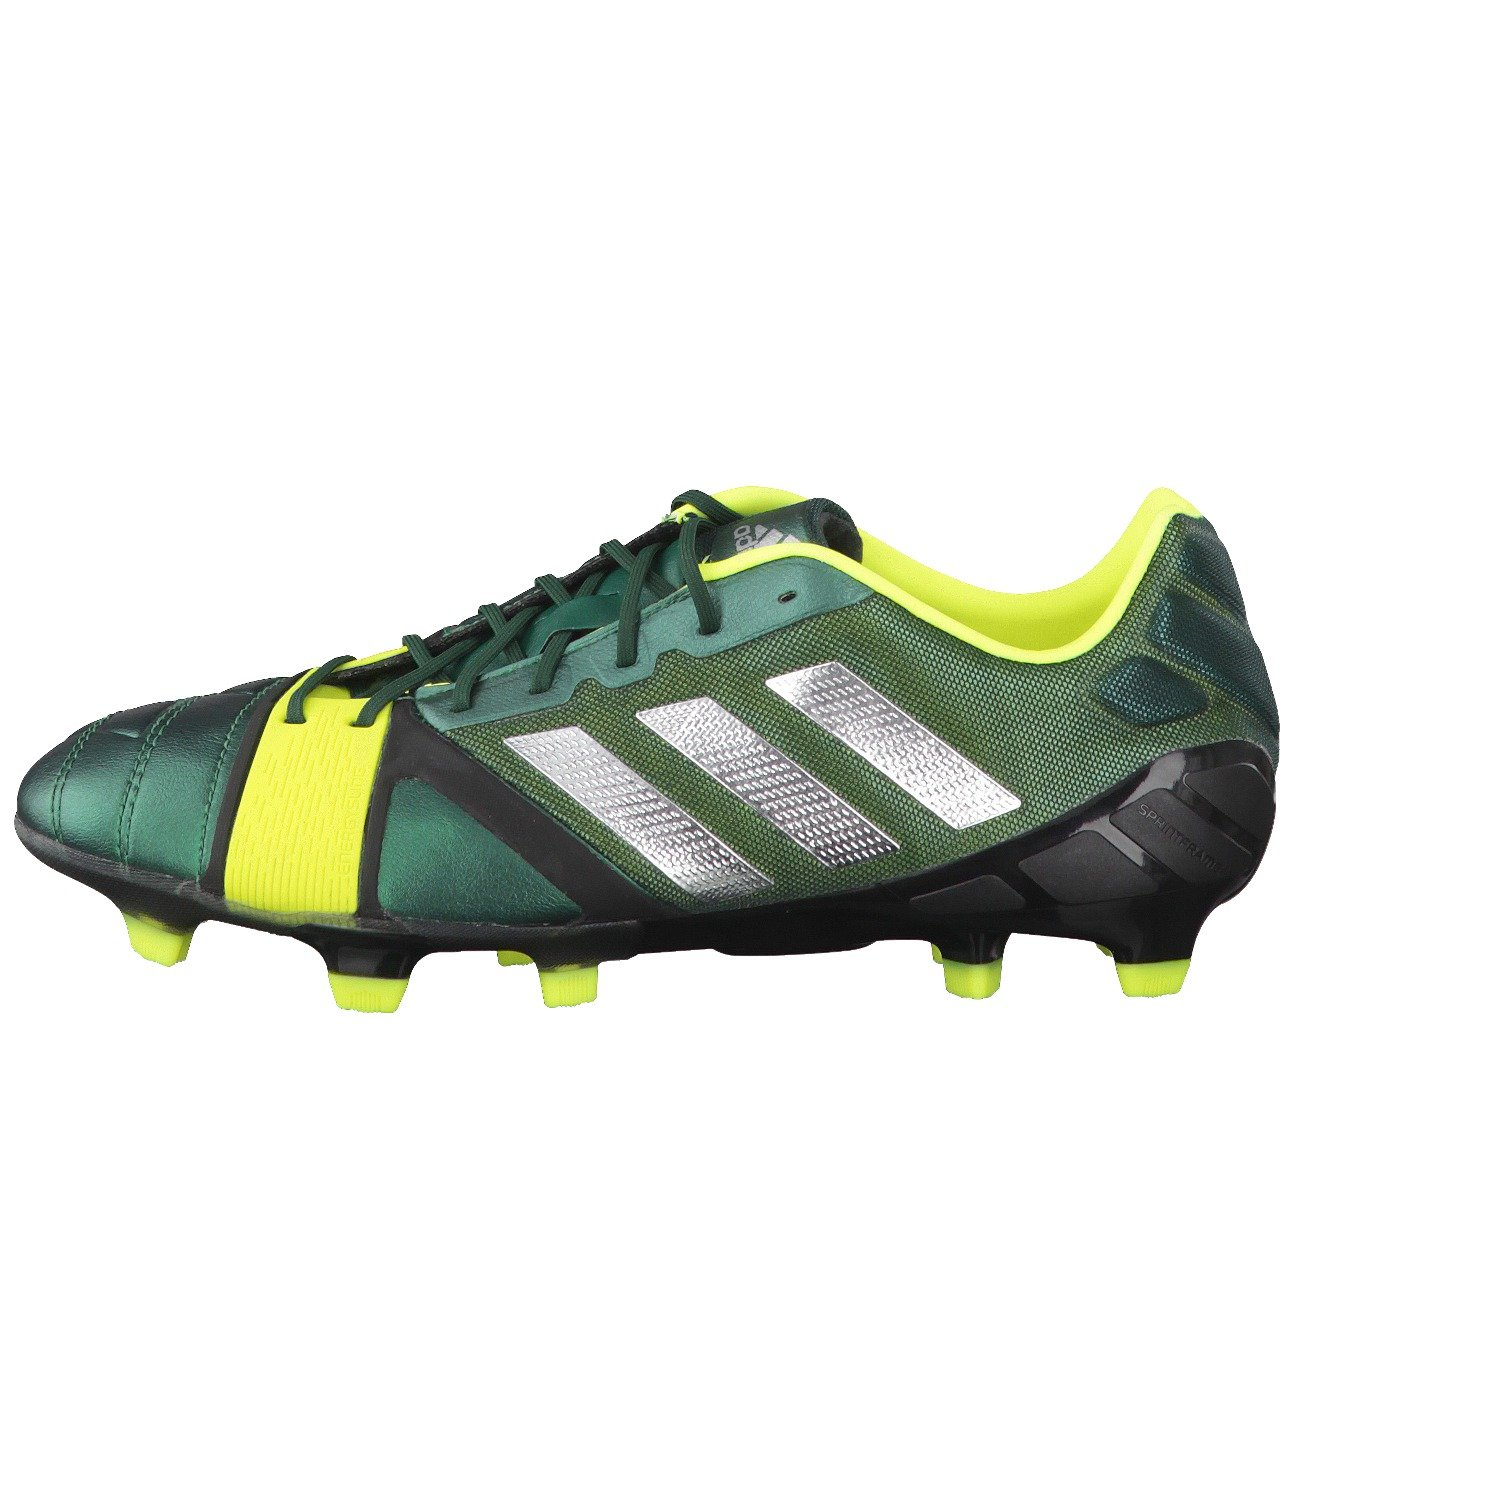 cheap for discount 6ab5e 4c53e adidas nitrocharge 1.0 TRX FG mens football boots Q34221 soccer cleats firm  ground (uk 7 us 7.5 eu 40 2 3)  Amazon.co.uk  Sports   Outdoors